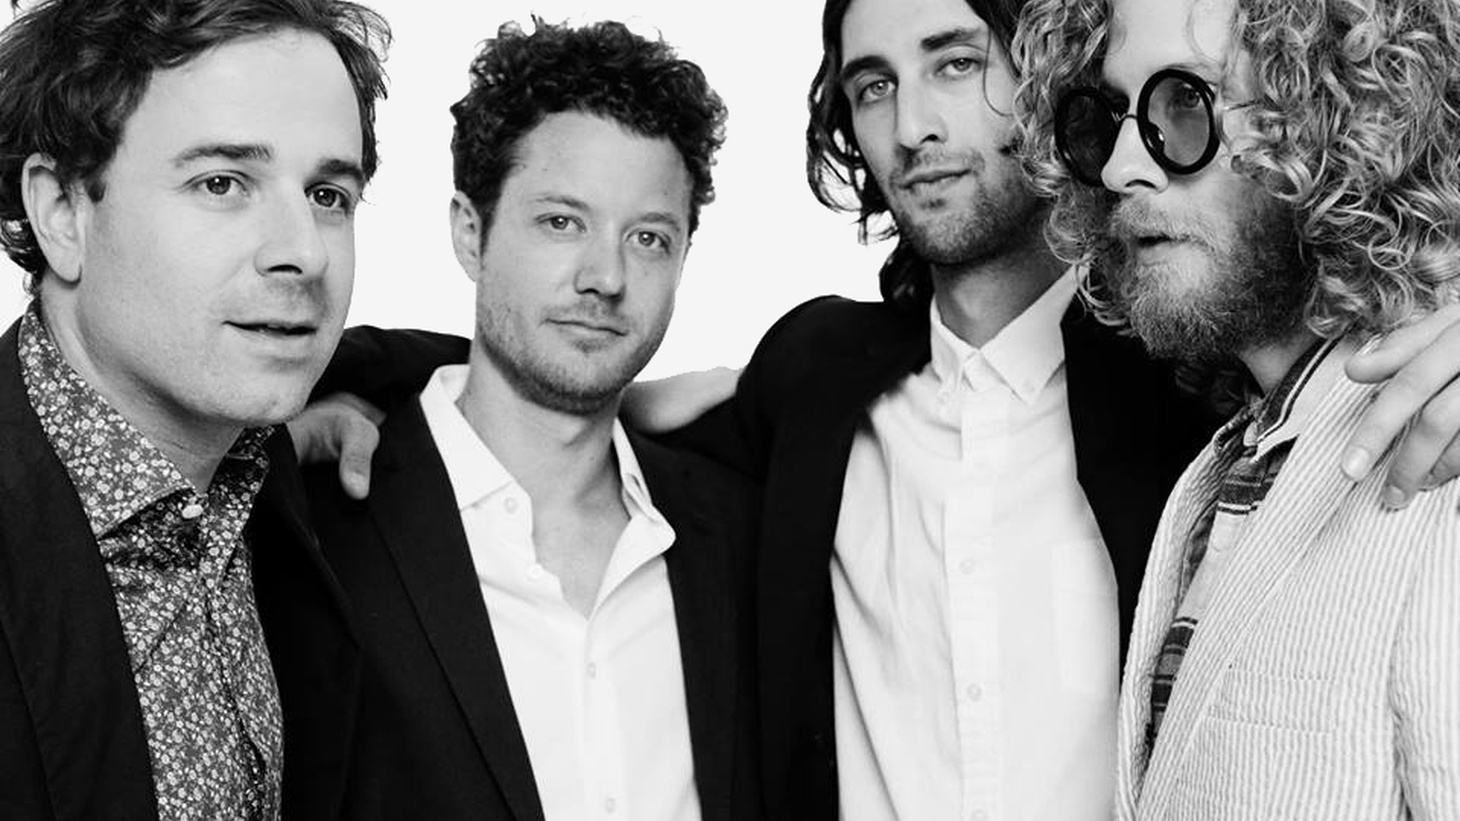 Dawes confirms that We're All Gonna Diewith a highly anticipated album that tackles sadness with humor.